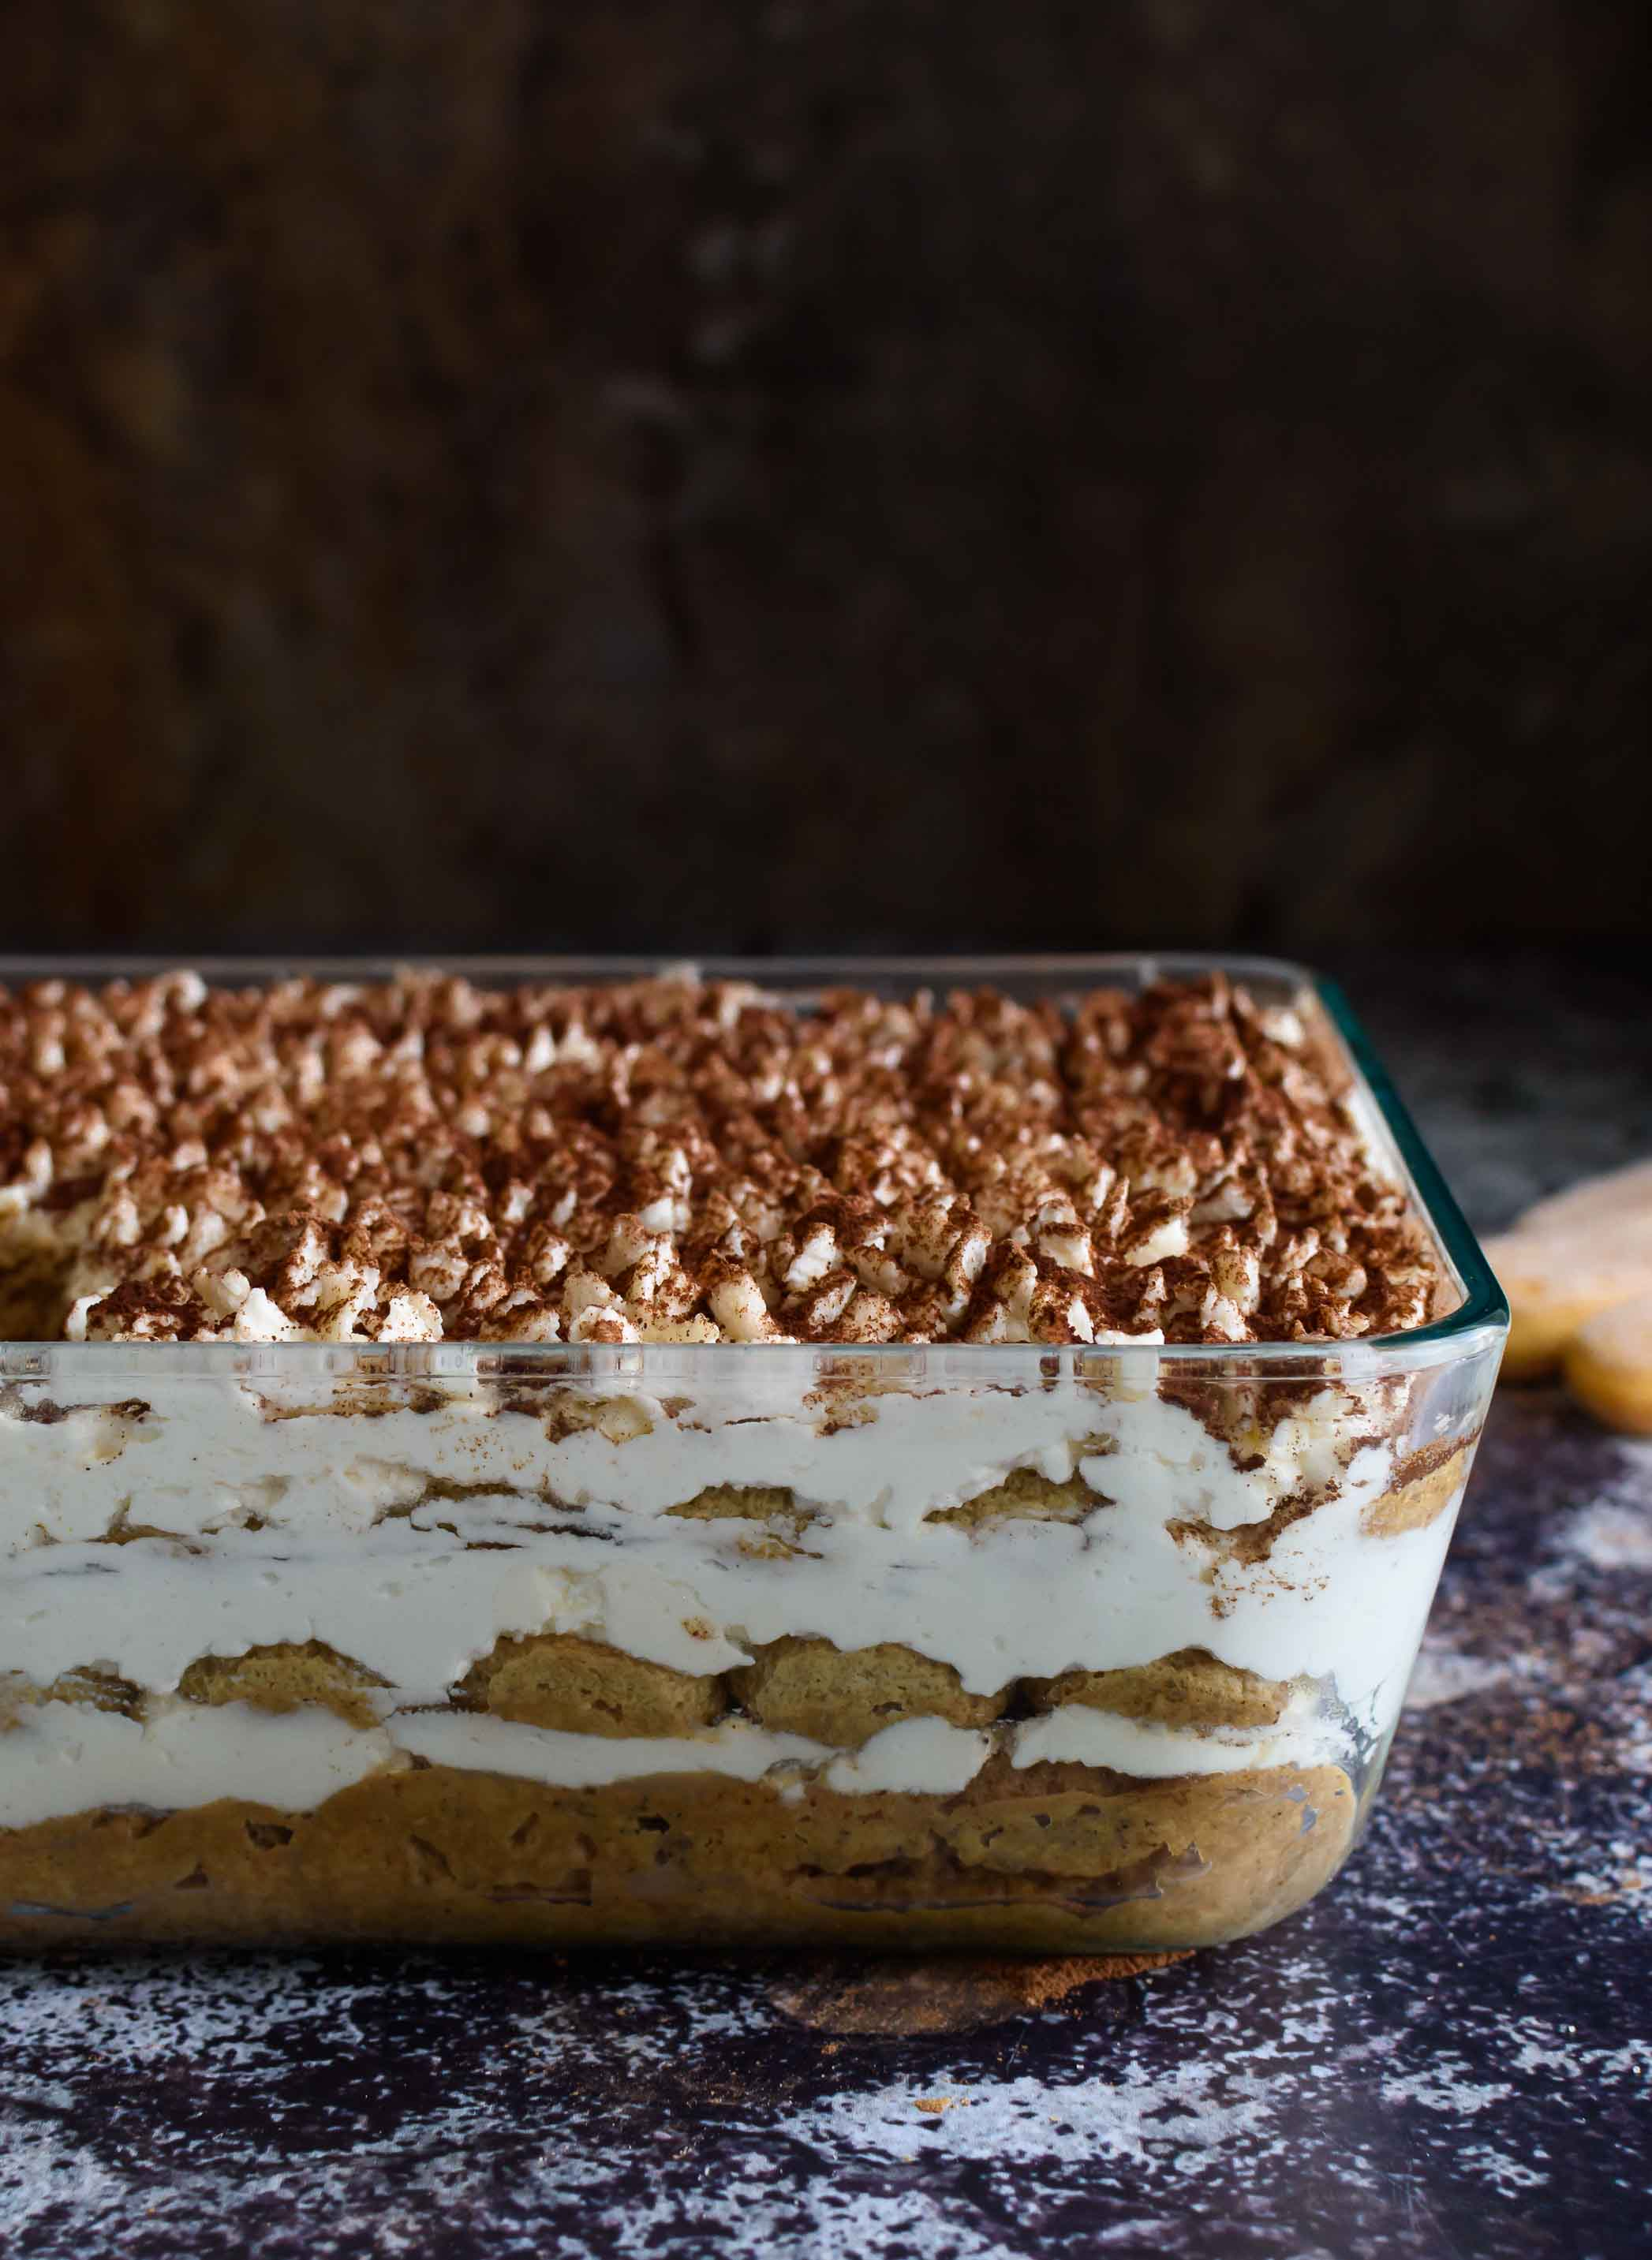 Easy No-Cook Eggless Tiramisu- Pepper Delight #pepperdelightblog #recipe #tiramisu #egglesstiramisu #dessert #italiandessert #celebrationrecipes #partyrecipes #makeaheadrecipes #baileysdessert #valentinesdayrecipes